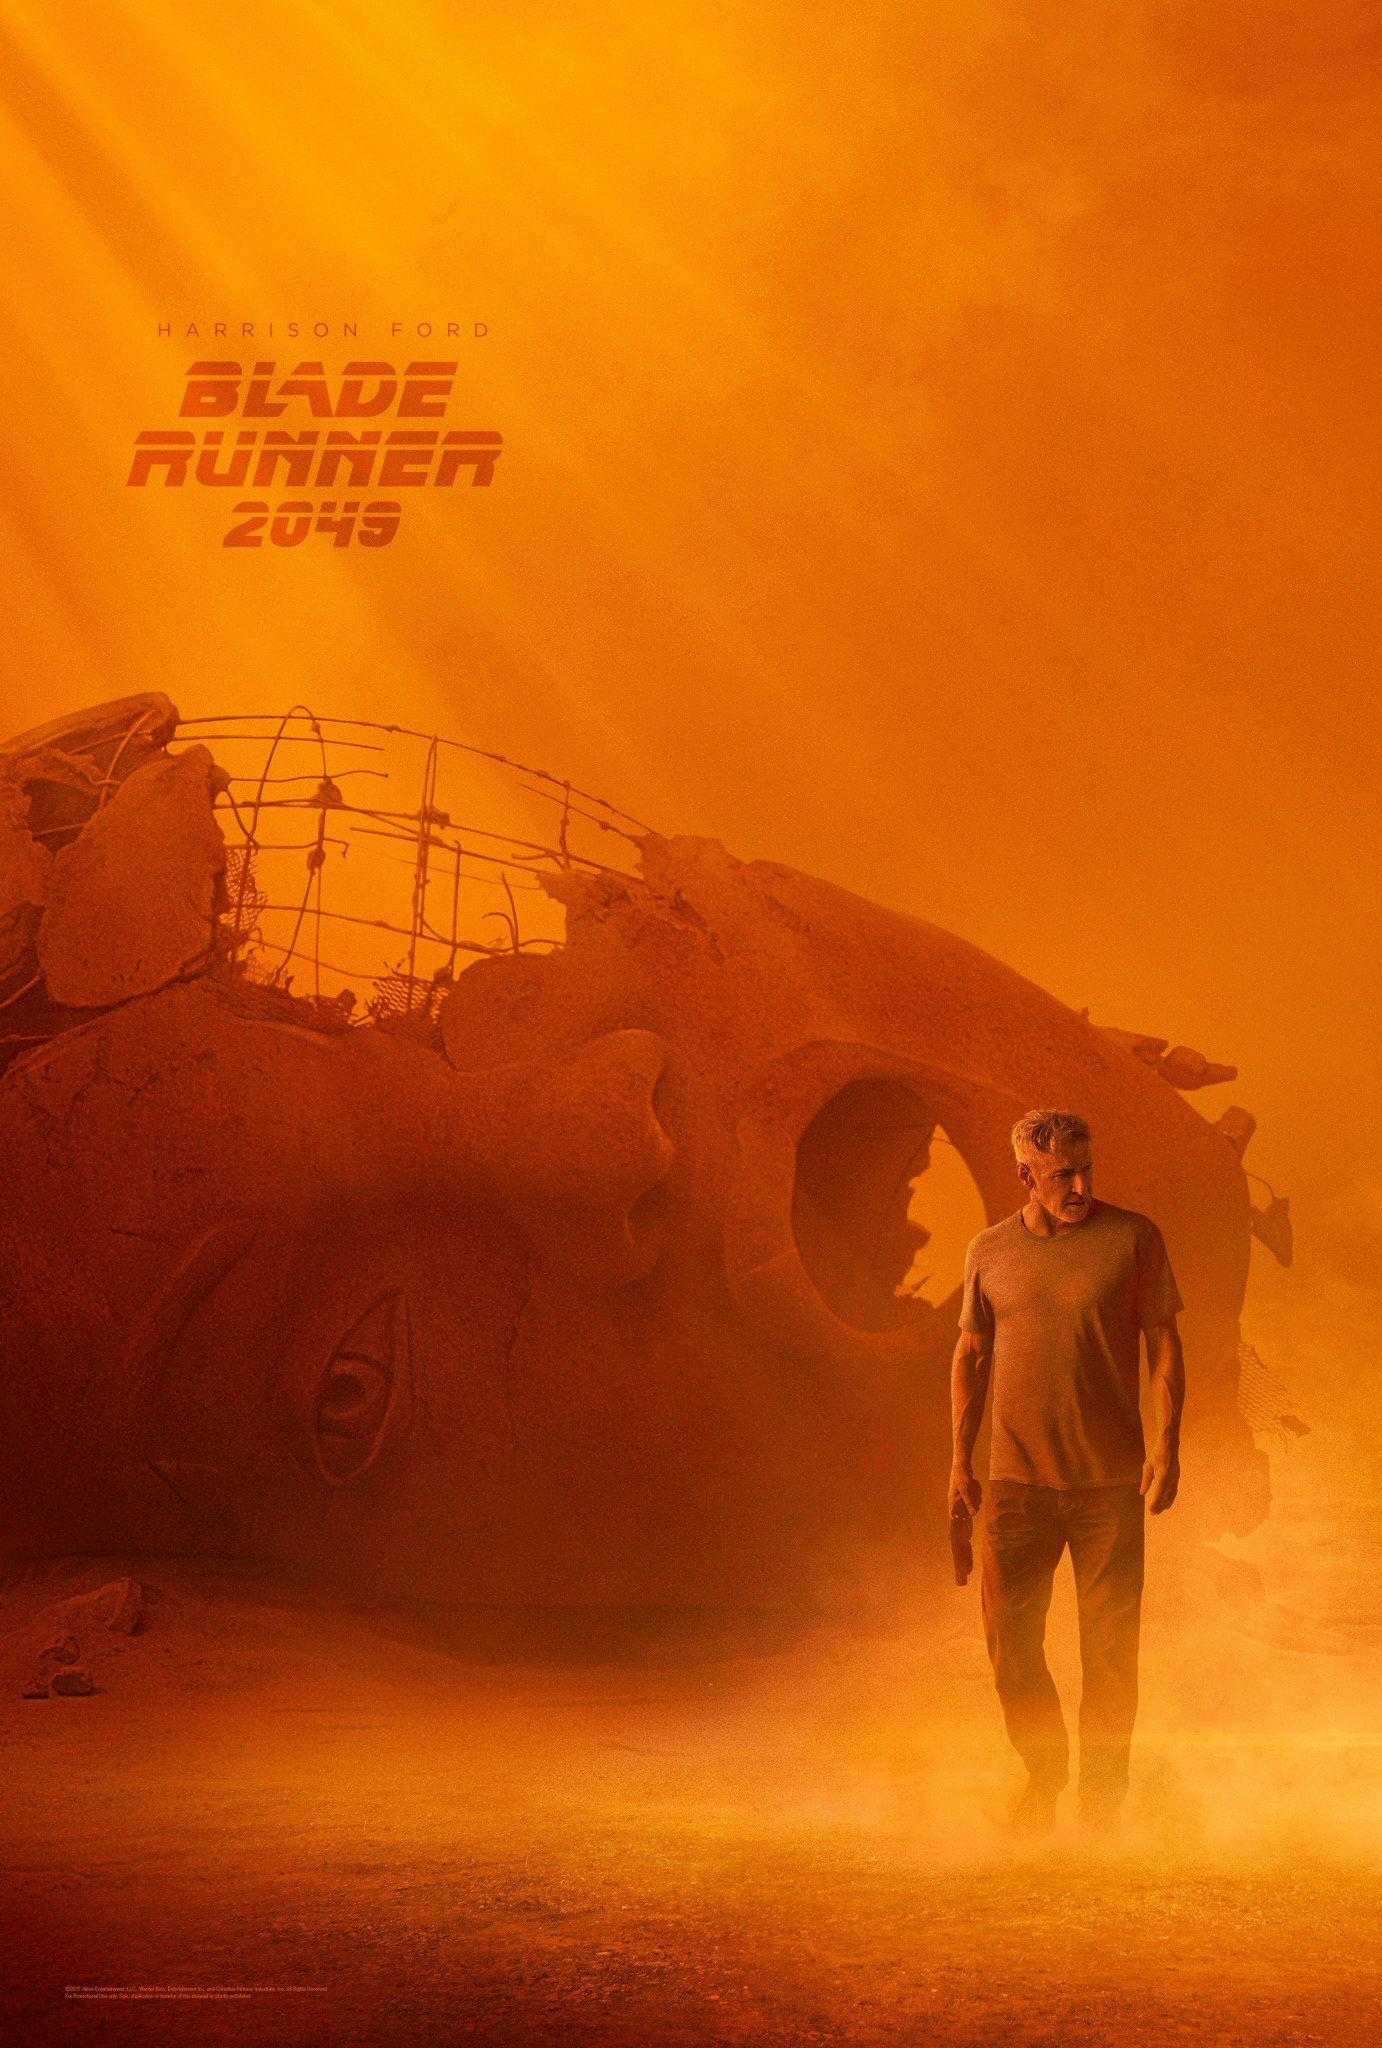 Courtesy of:https://www.facebook.com/BladeRunner2049/photos/a.291583460956788.66951.102843129830823/1288238501291274/?type=3&theater